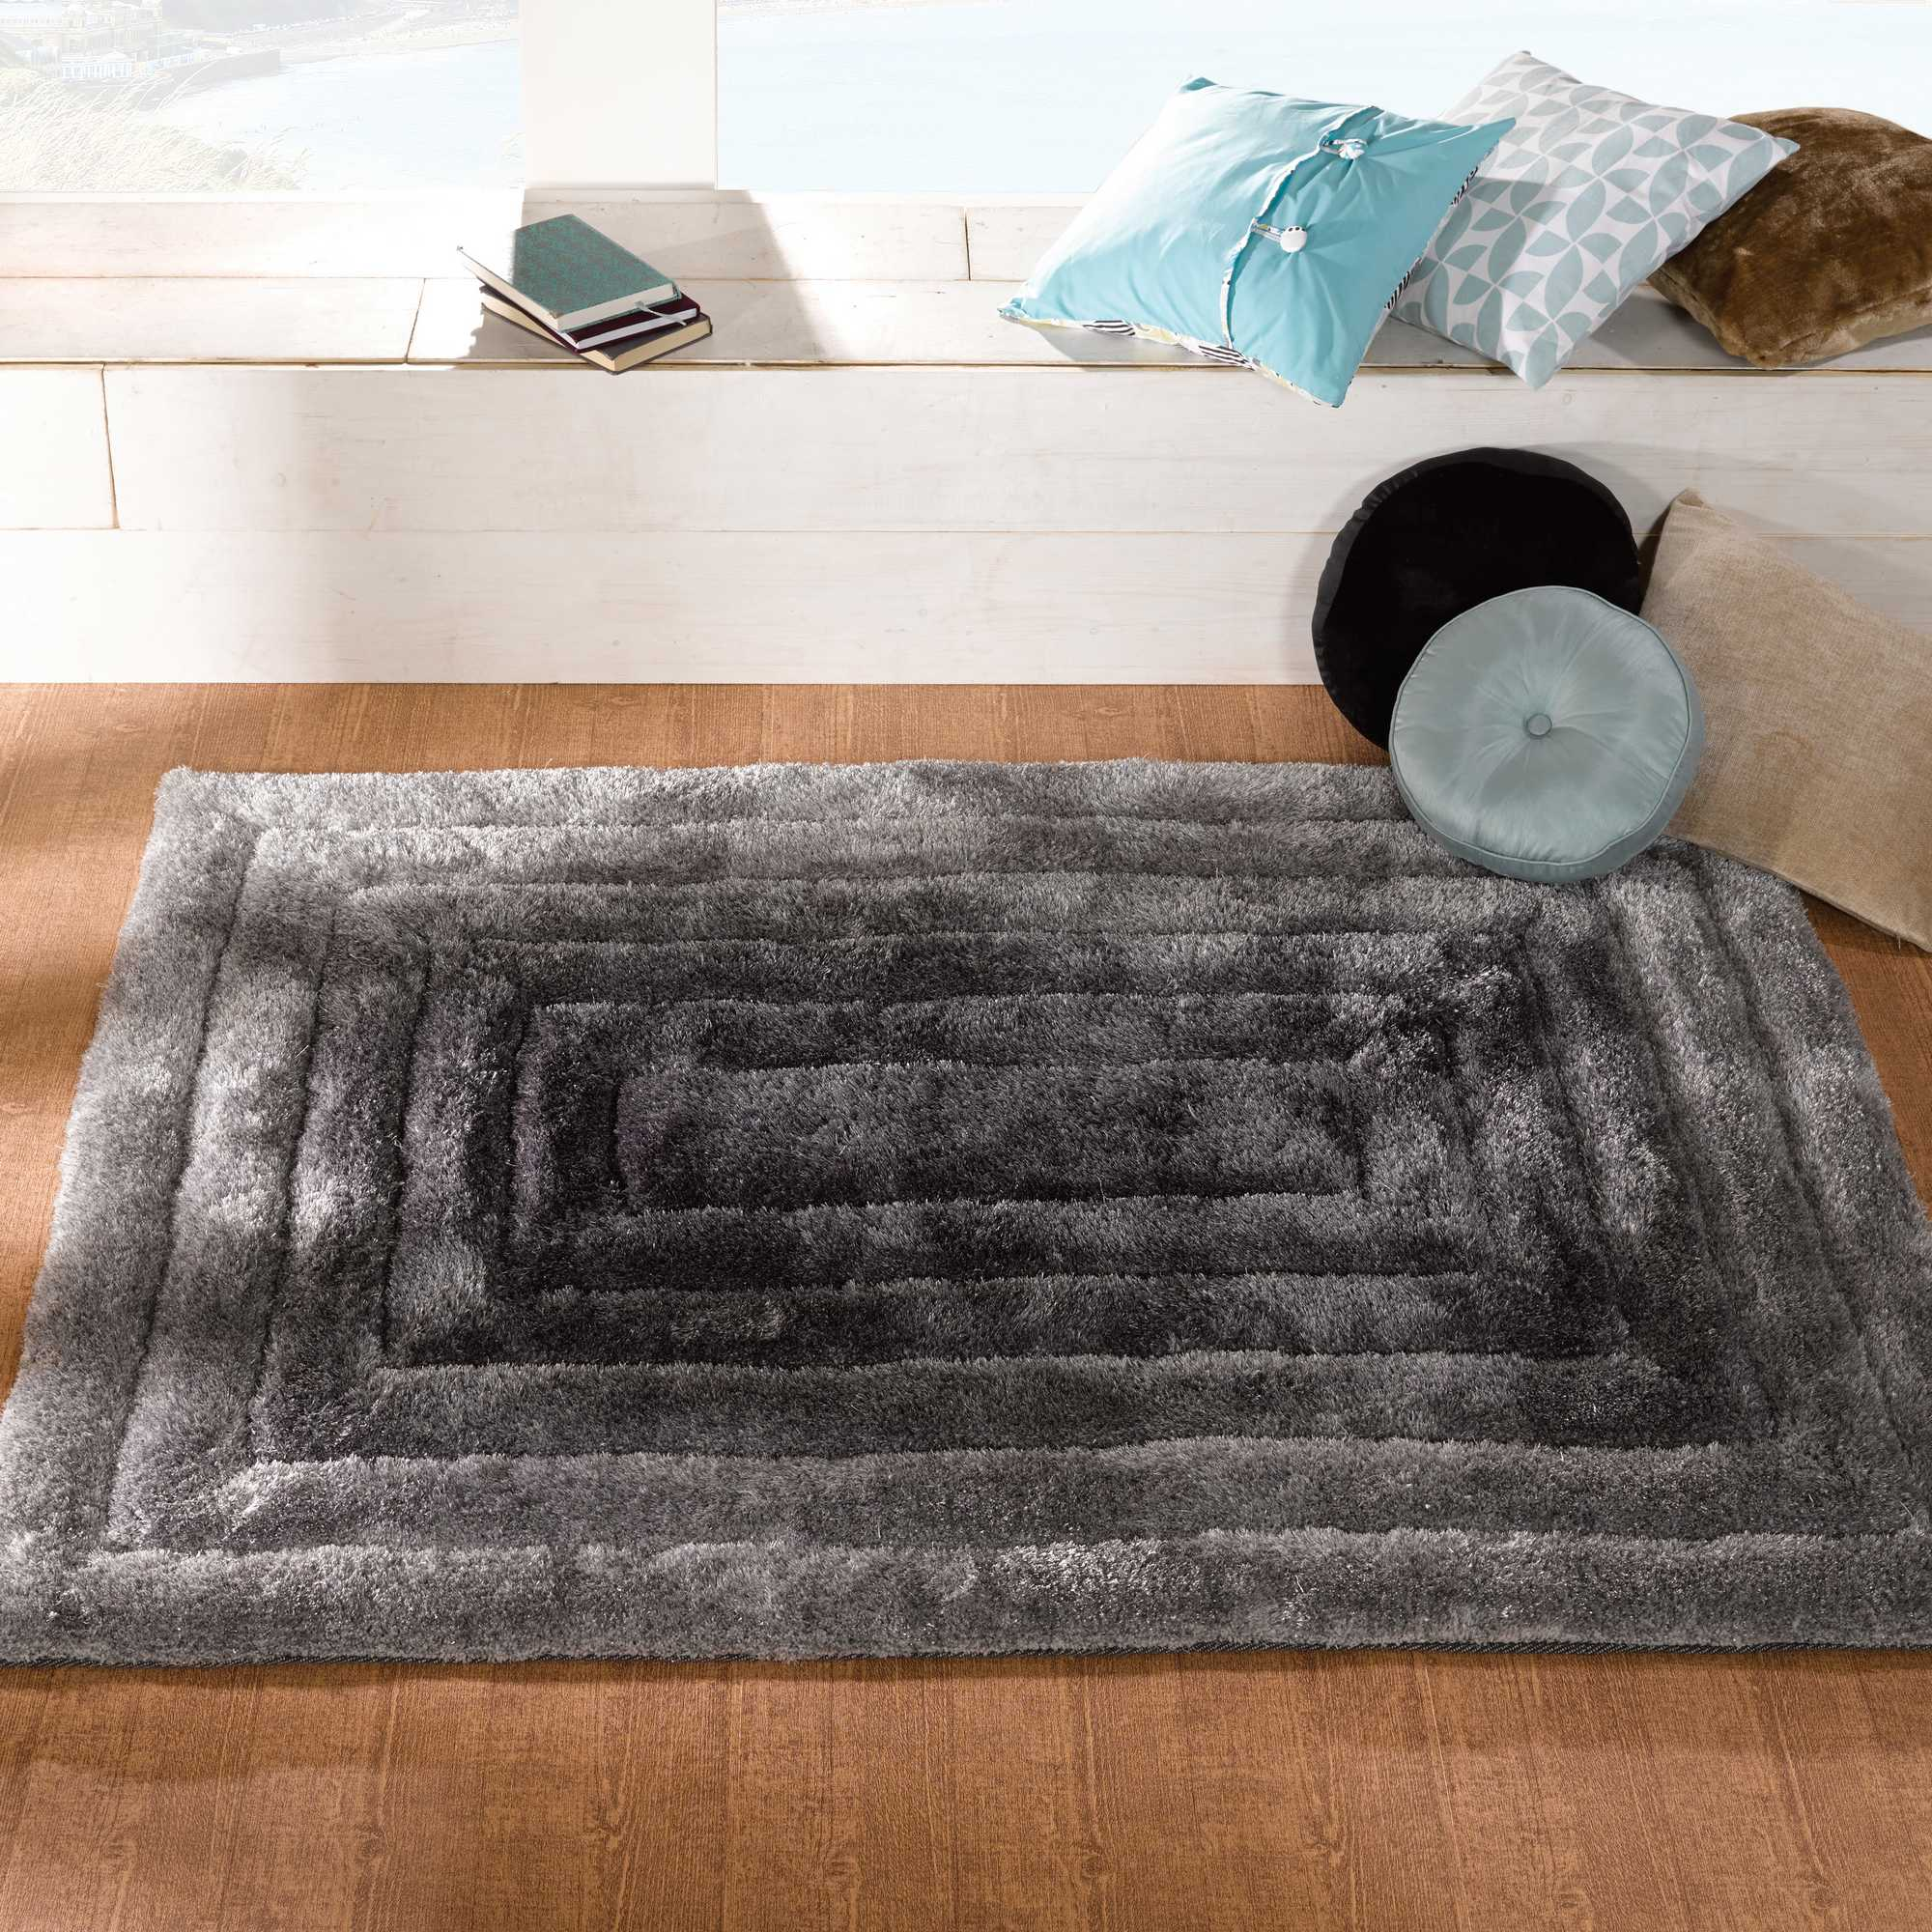 Verge Ridge Rugs in Black Grey